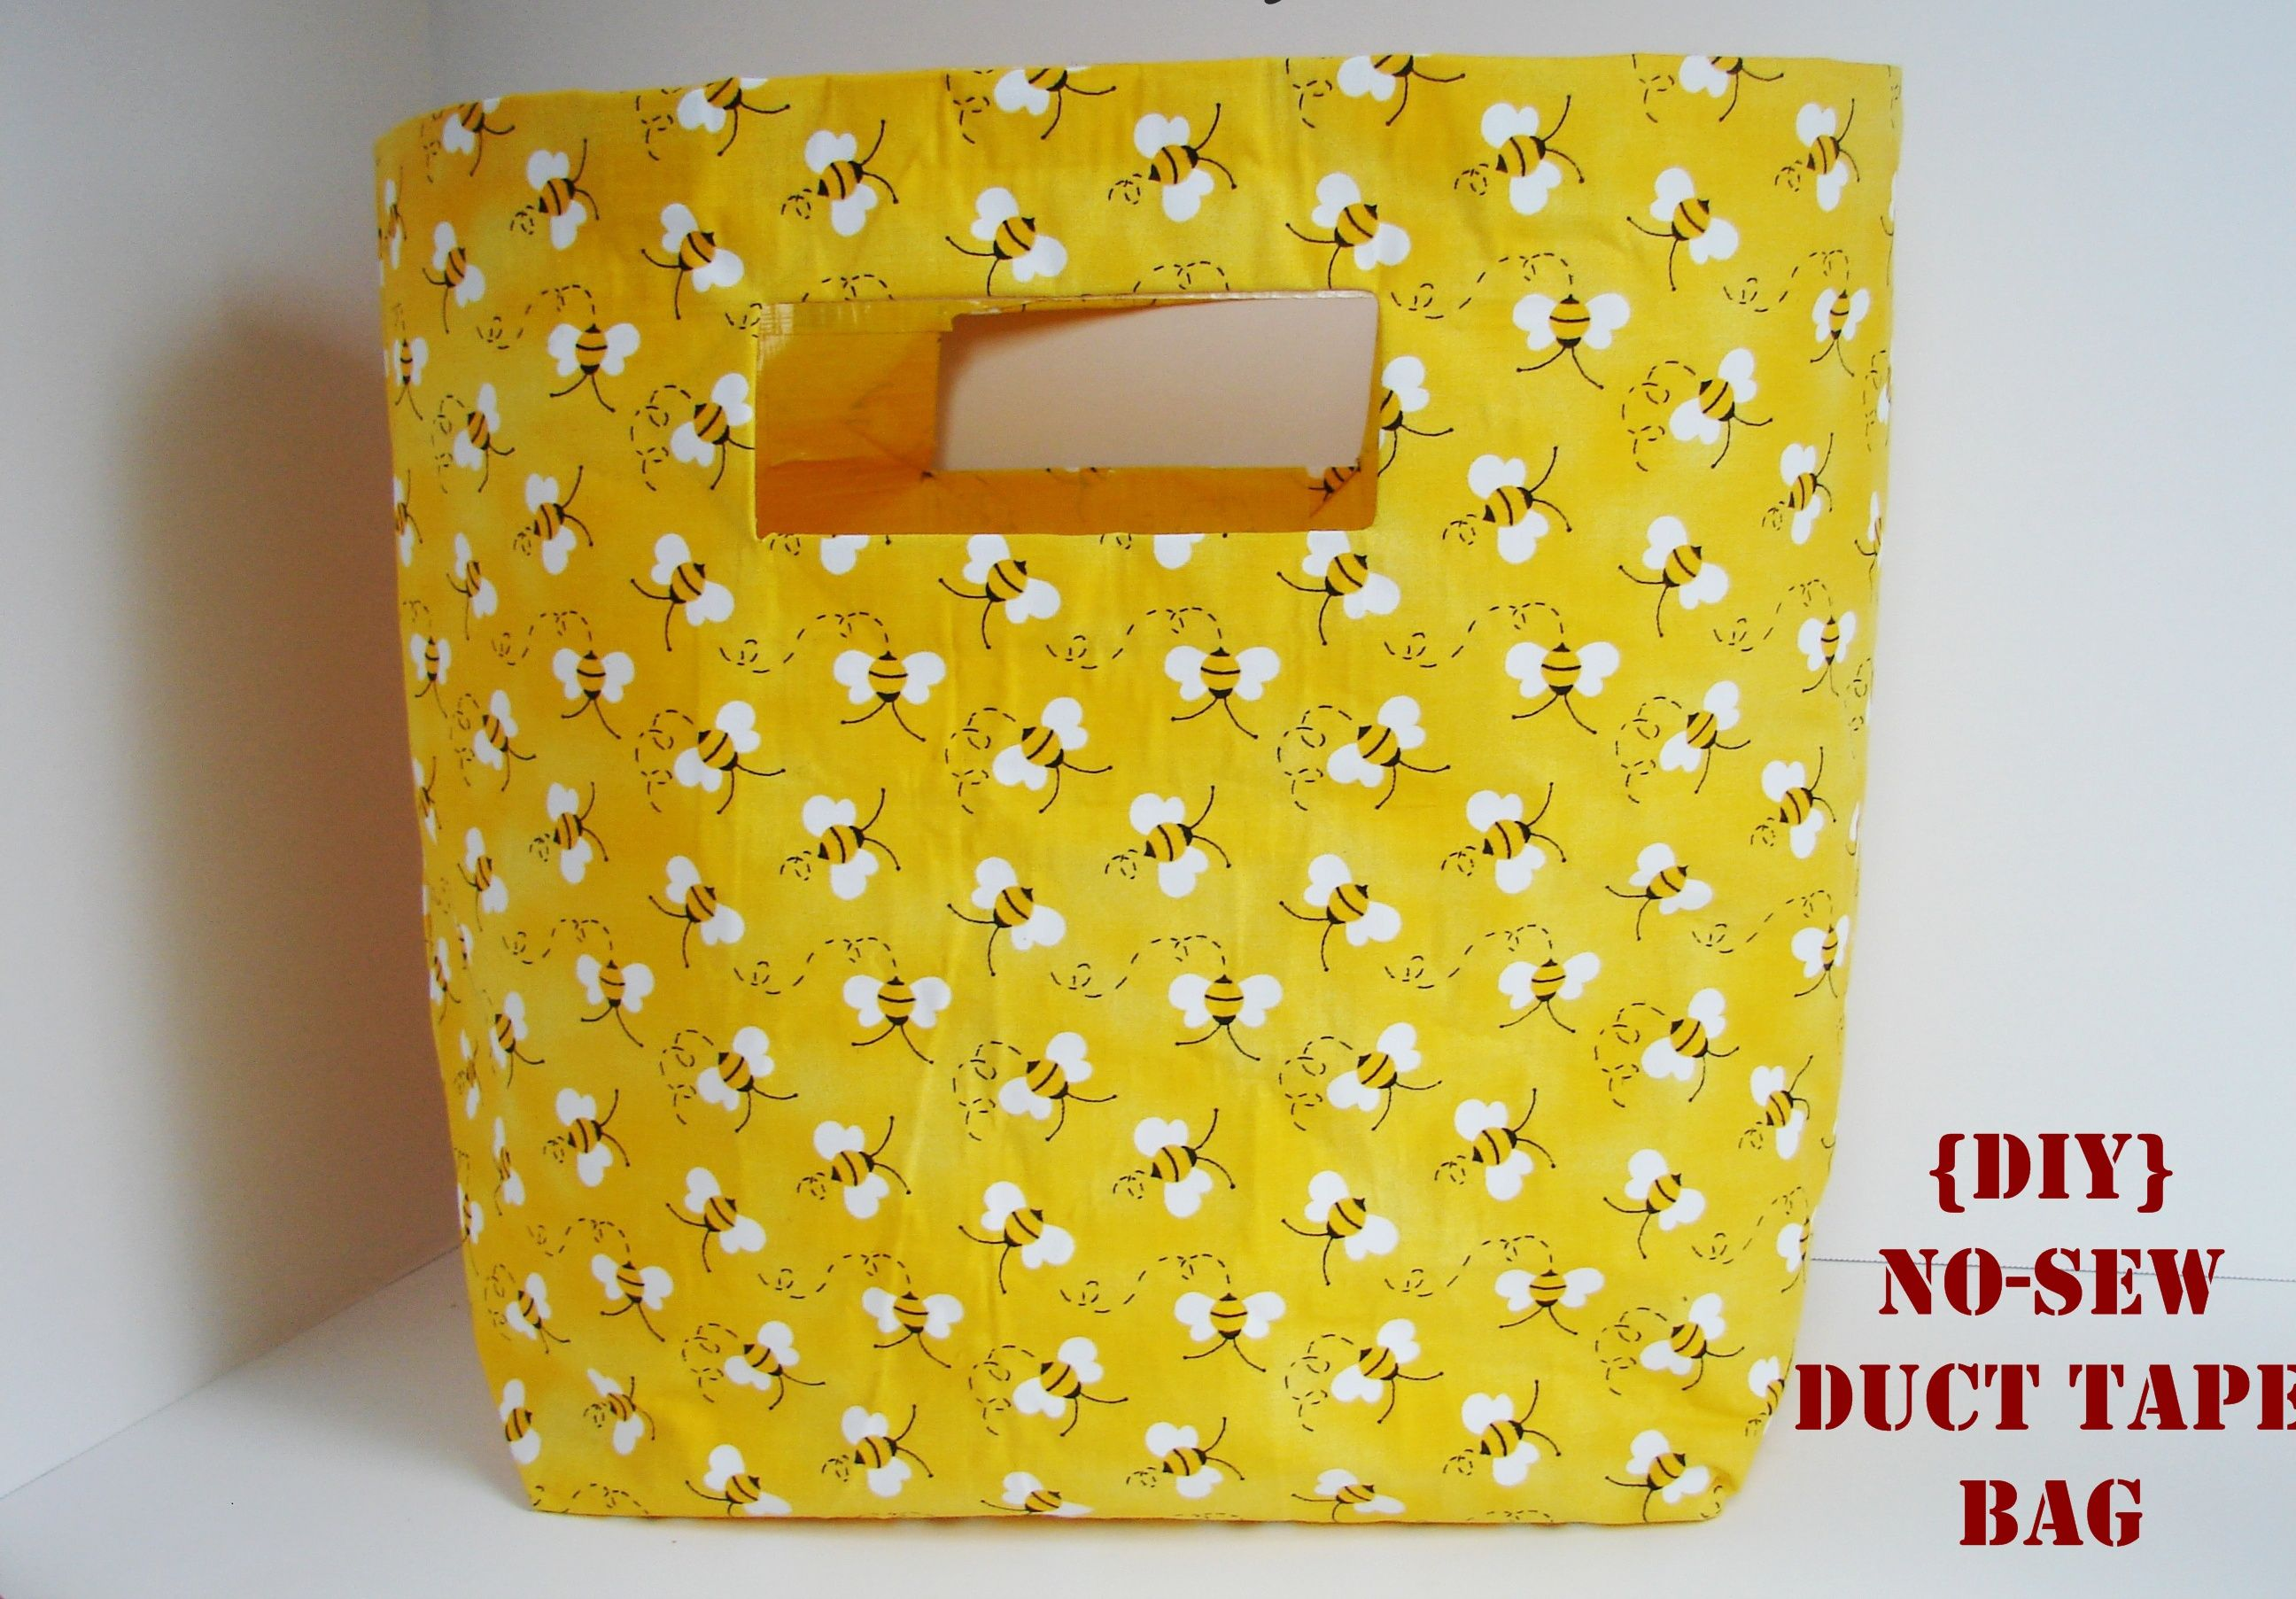 Diy No Sew Duct Tape Bag Crazy Easy To Do What A Great